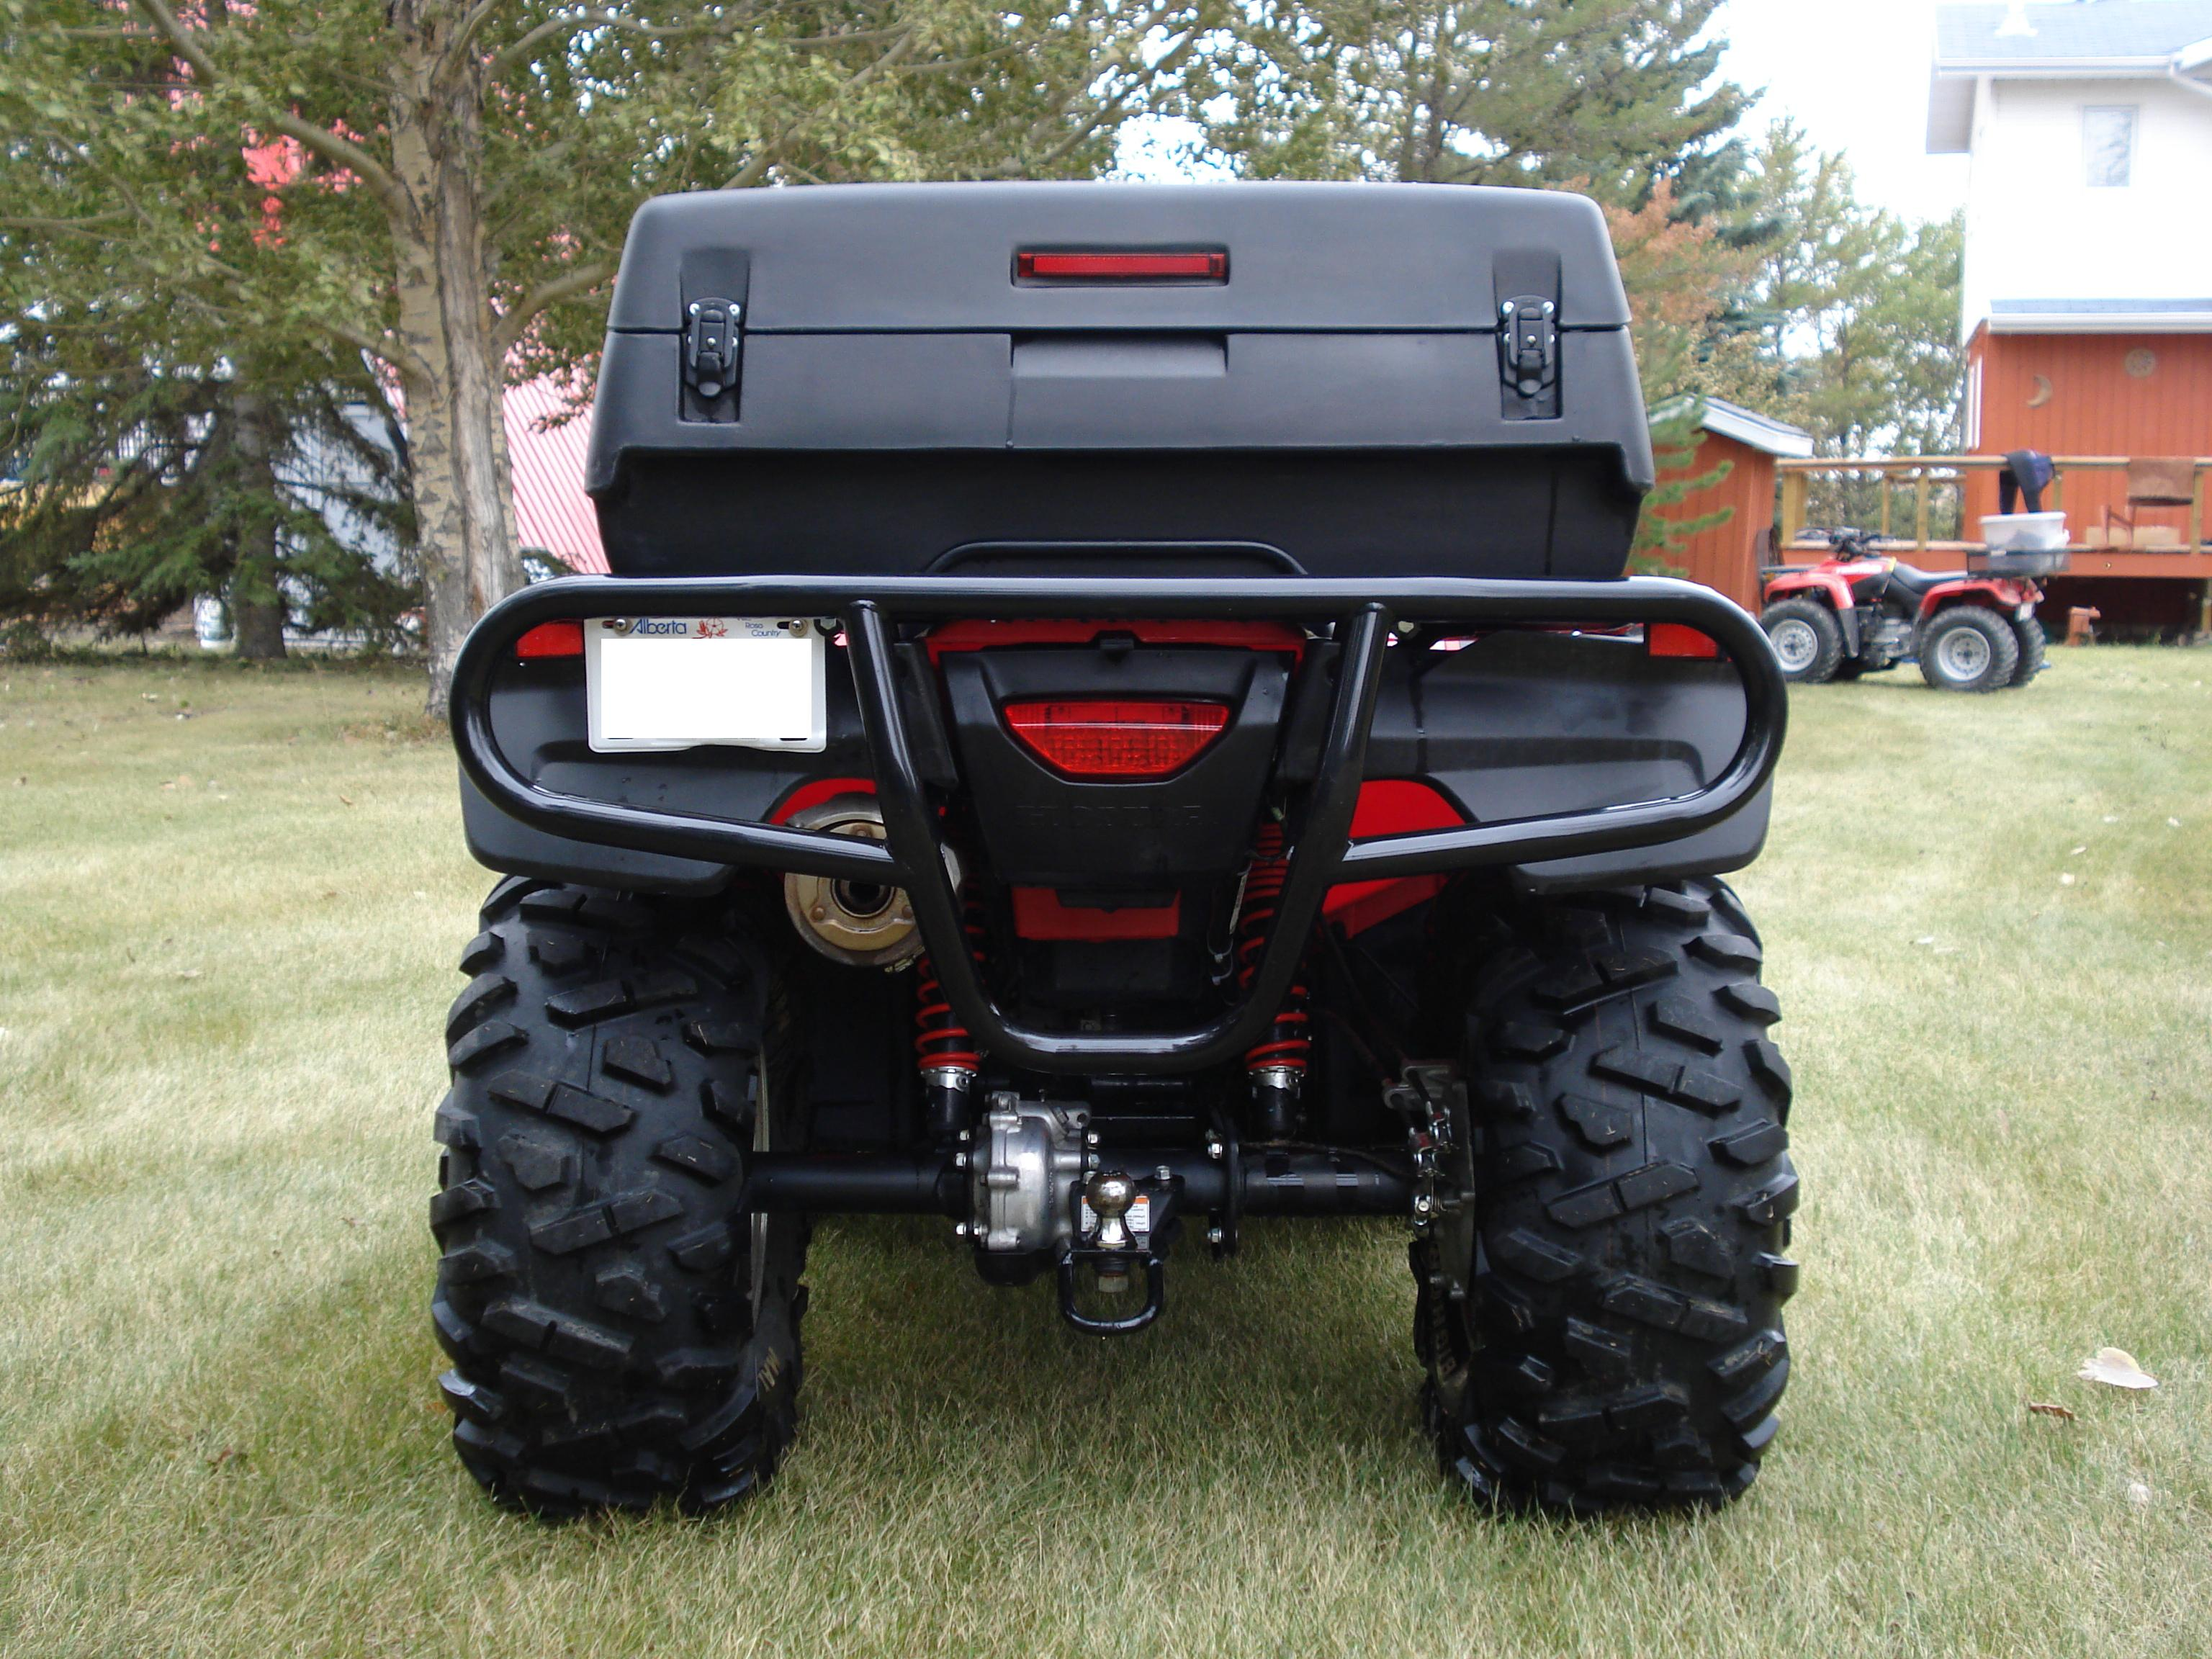 Let see your foreman 500'S - Page 46 - Honda Foreman ...